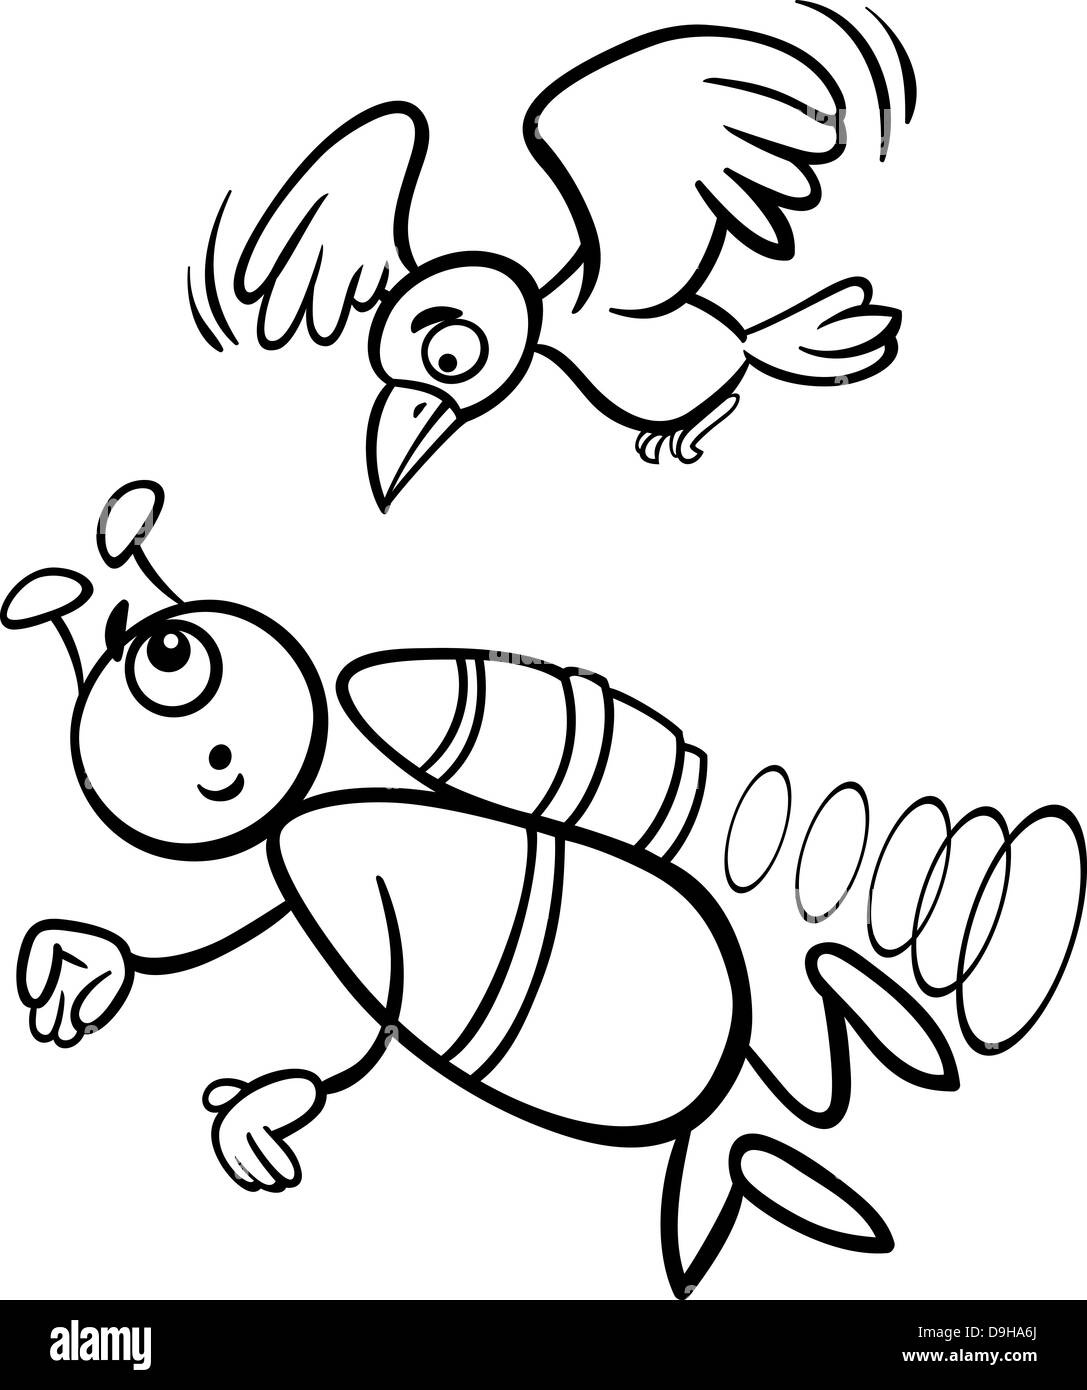 Black and White Cartoon Illustration of Funny Alien or Martian Comic Character Flying with Bird for Coloring Book - Stock Image